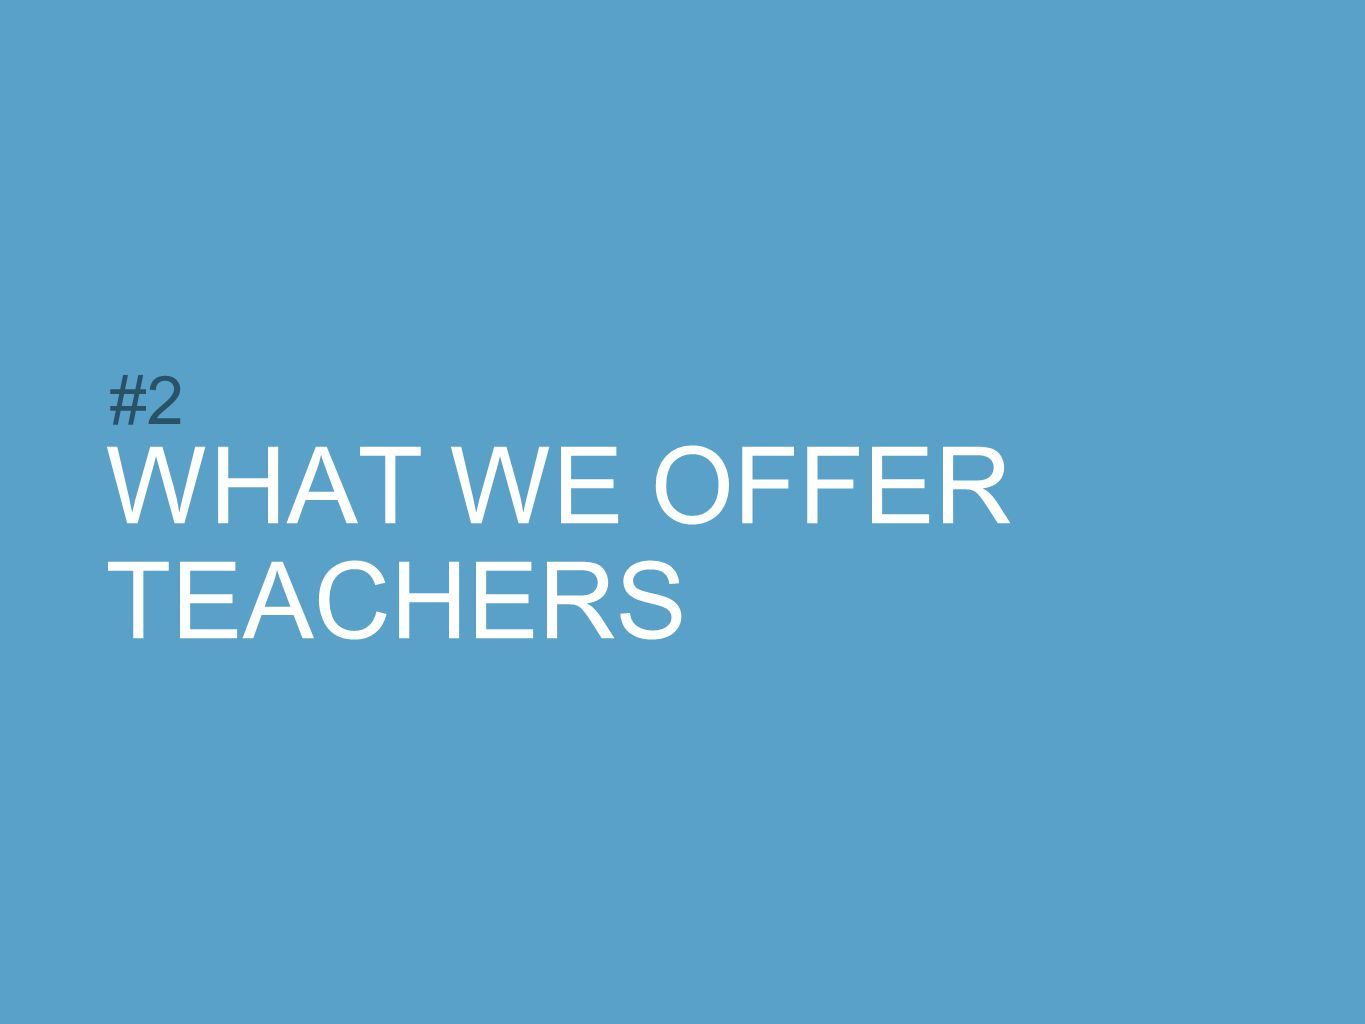 #2 WHAT WE OFFER TEACHERS